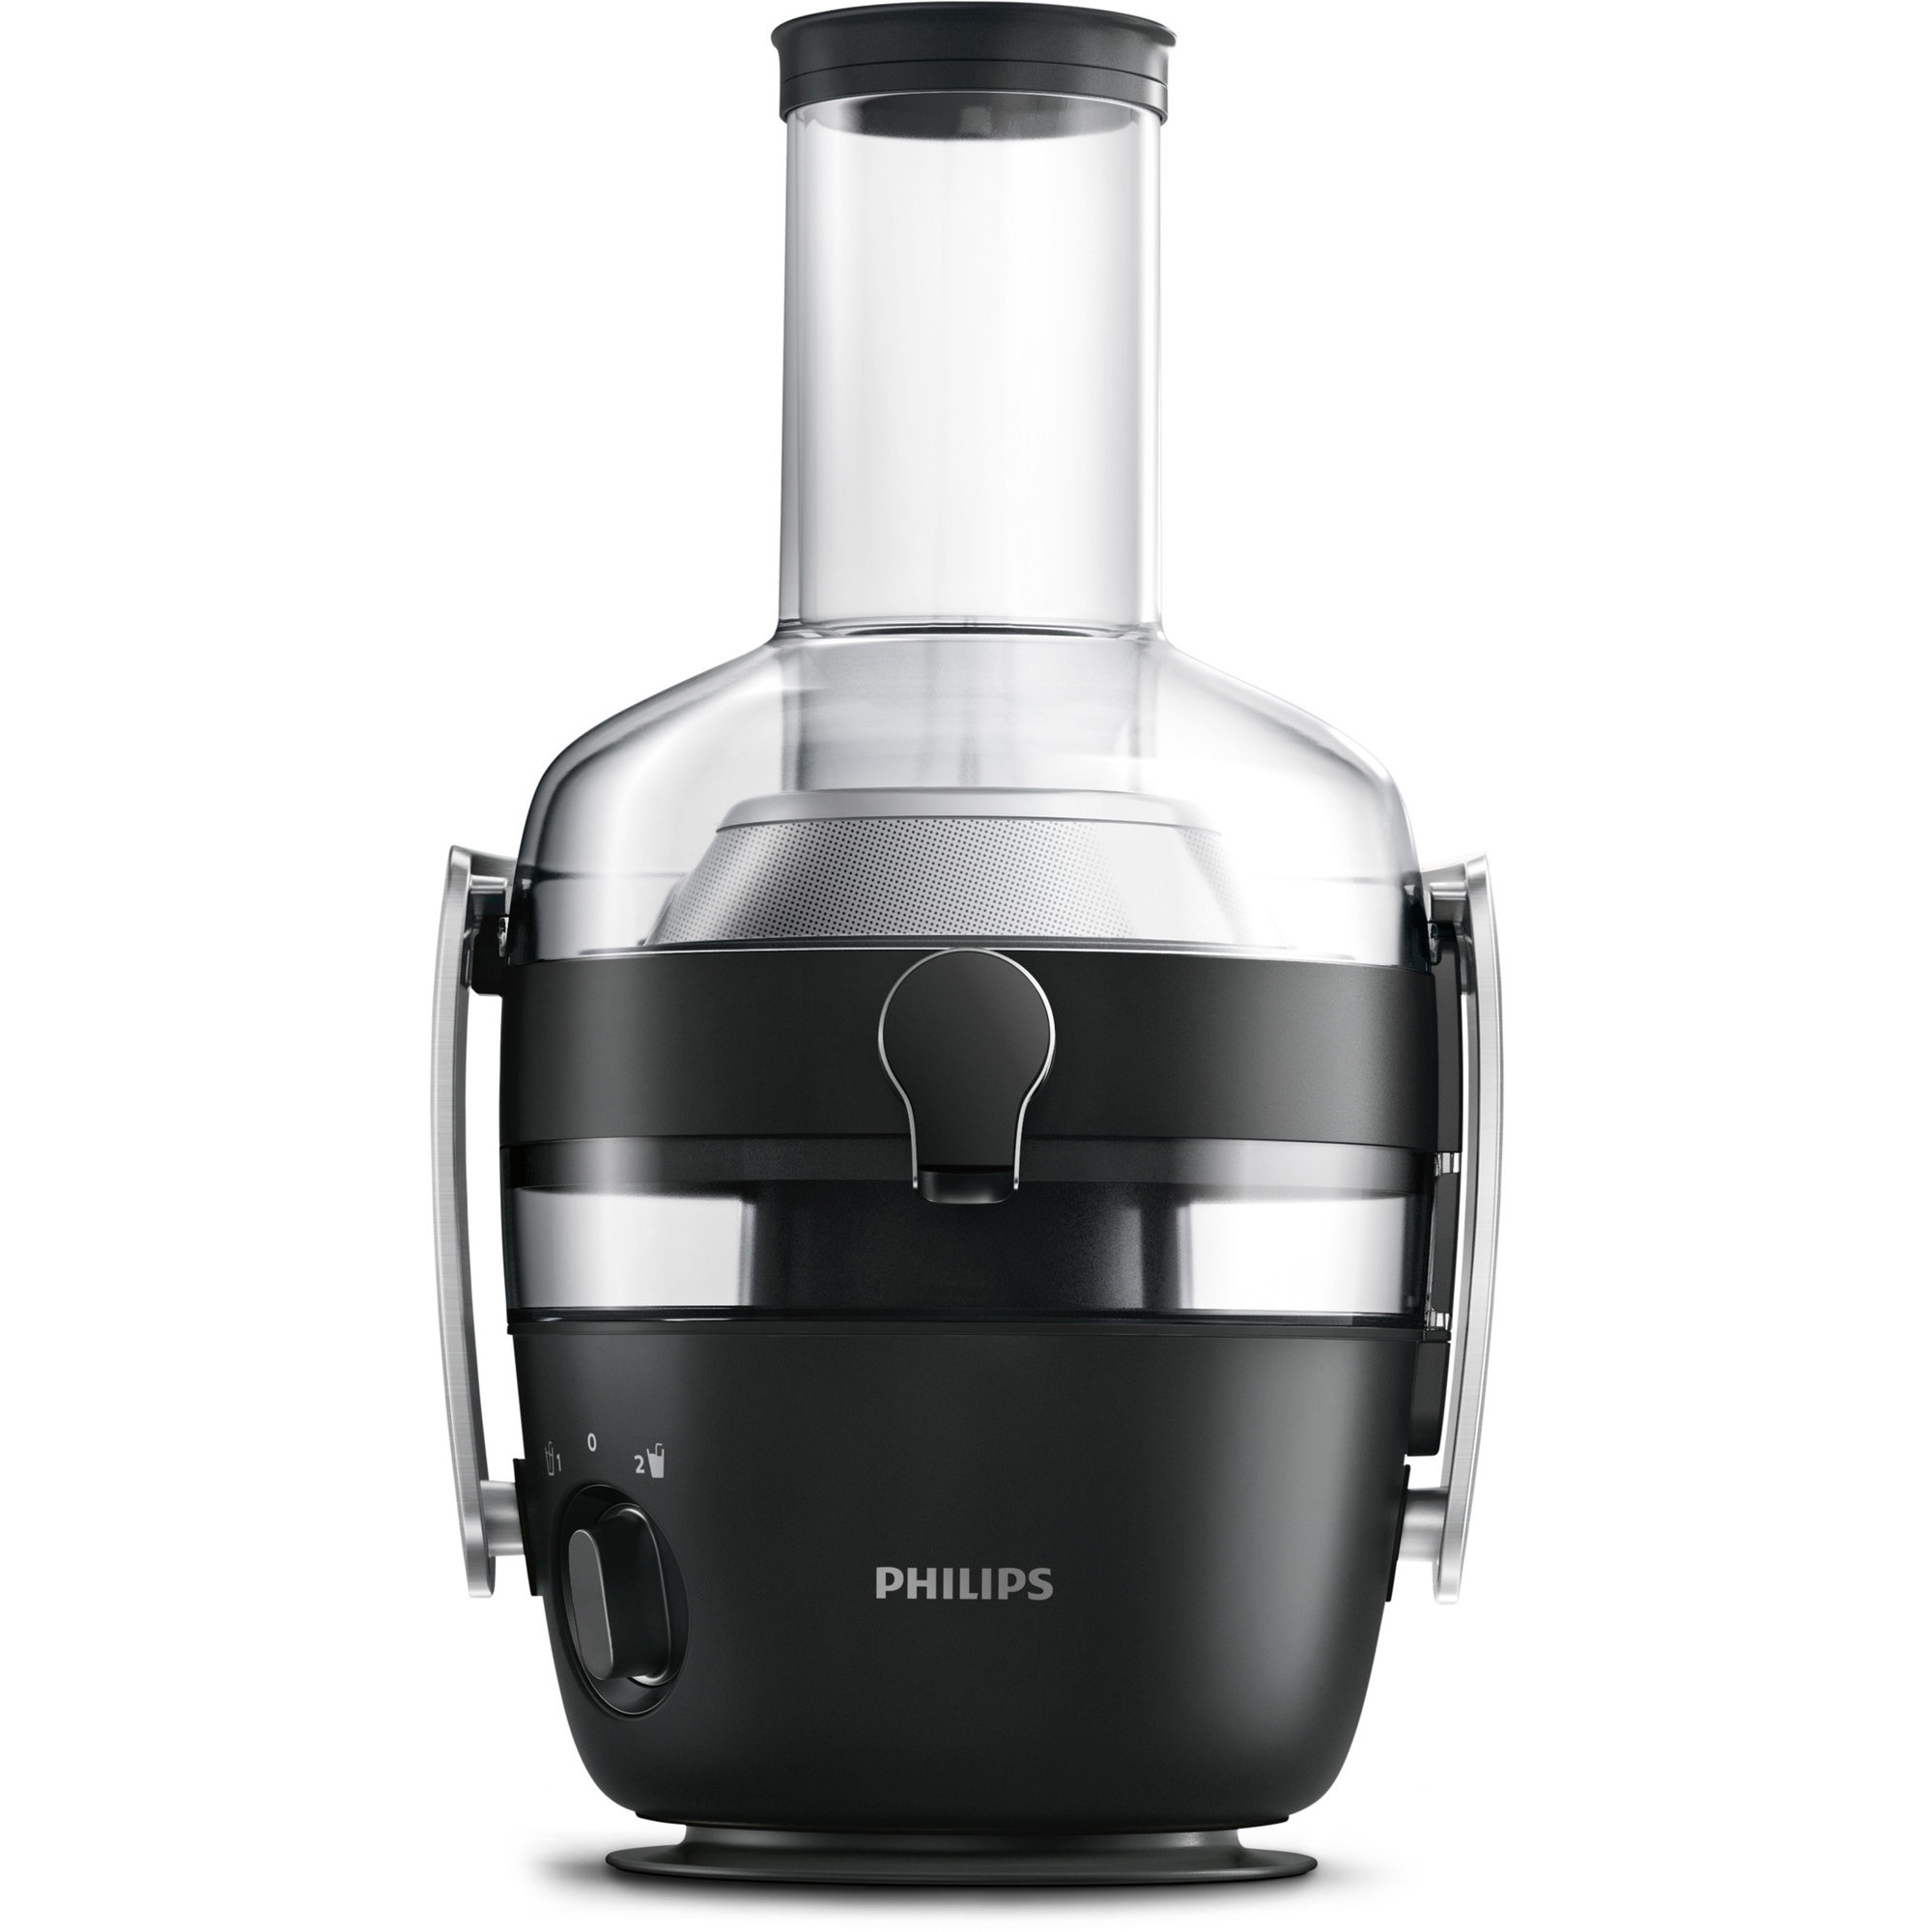 Philips HR1919/70 Juicer Avance 1000 W FiberBoost